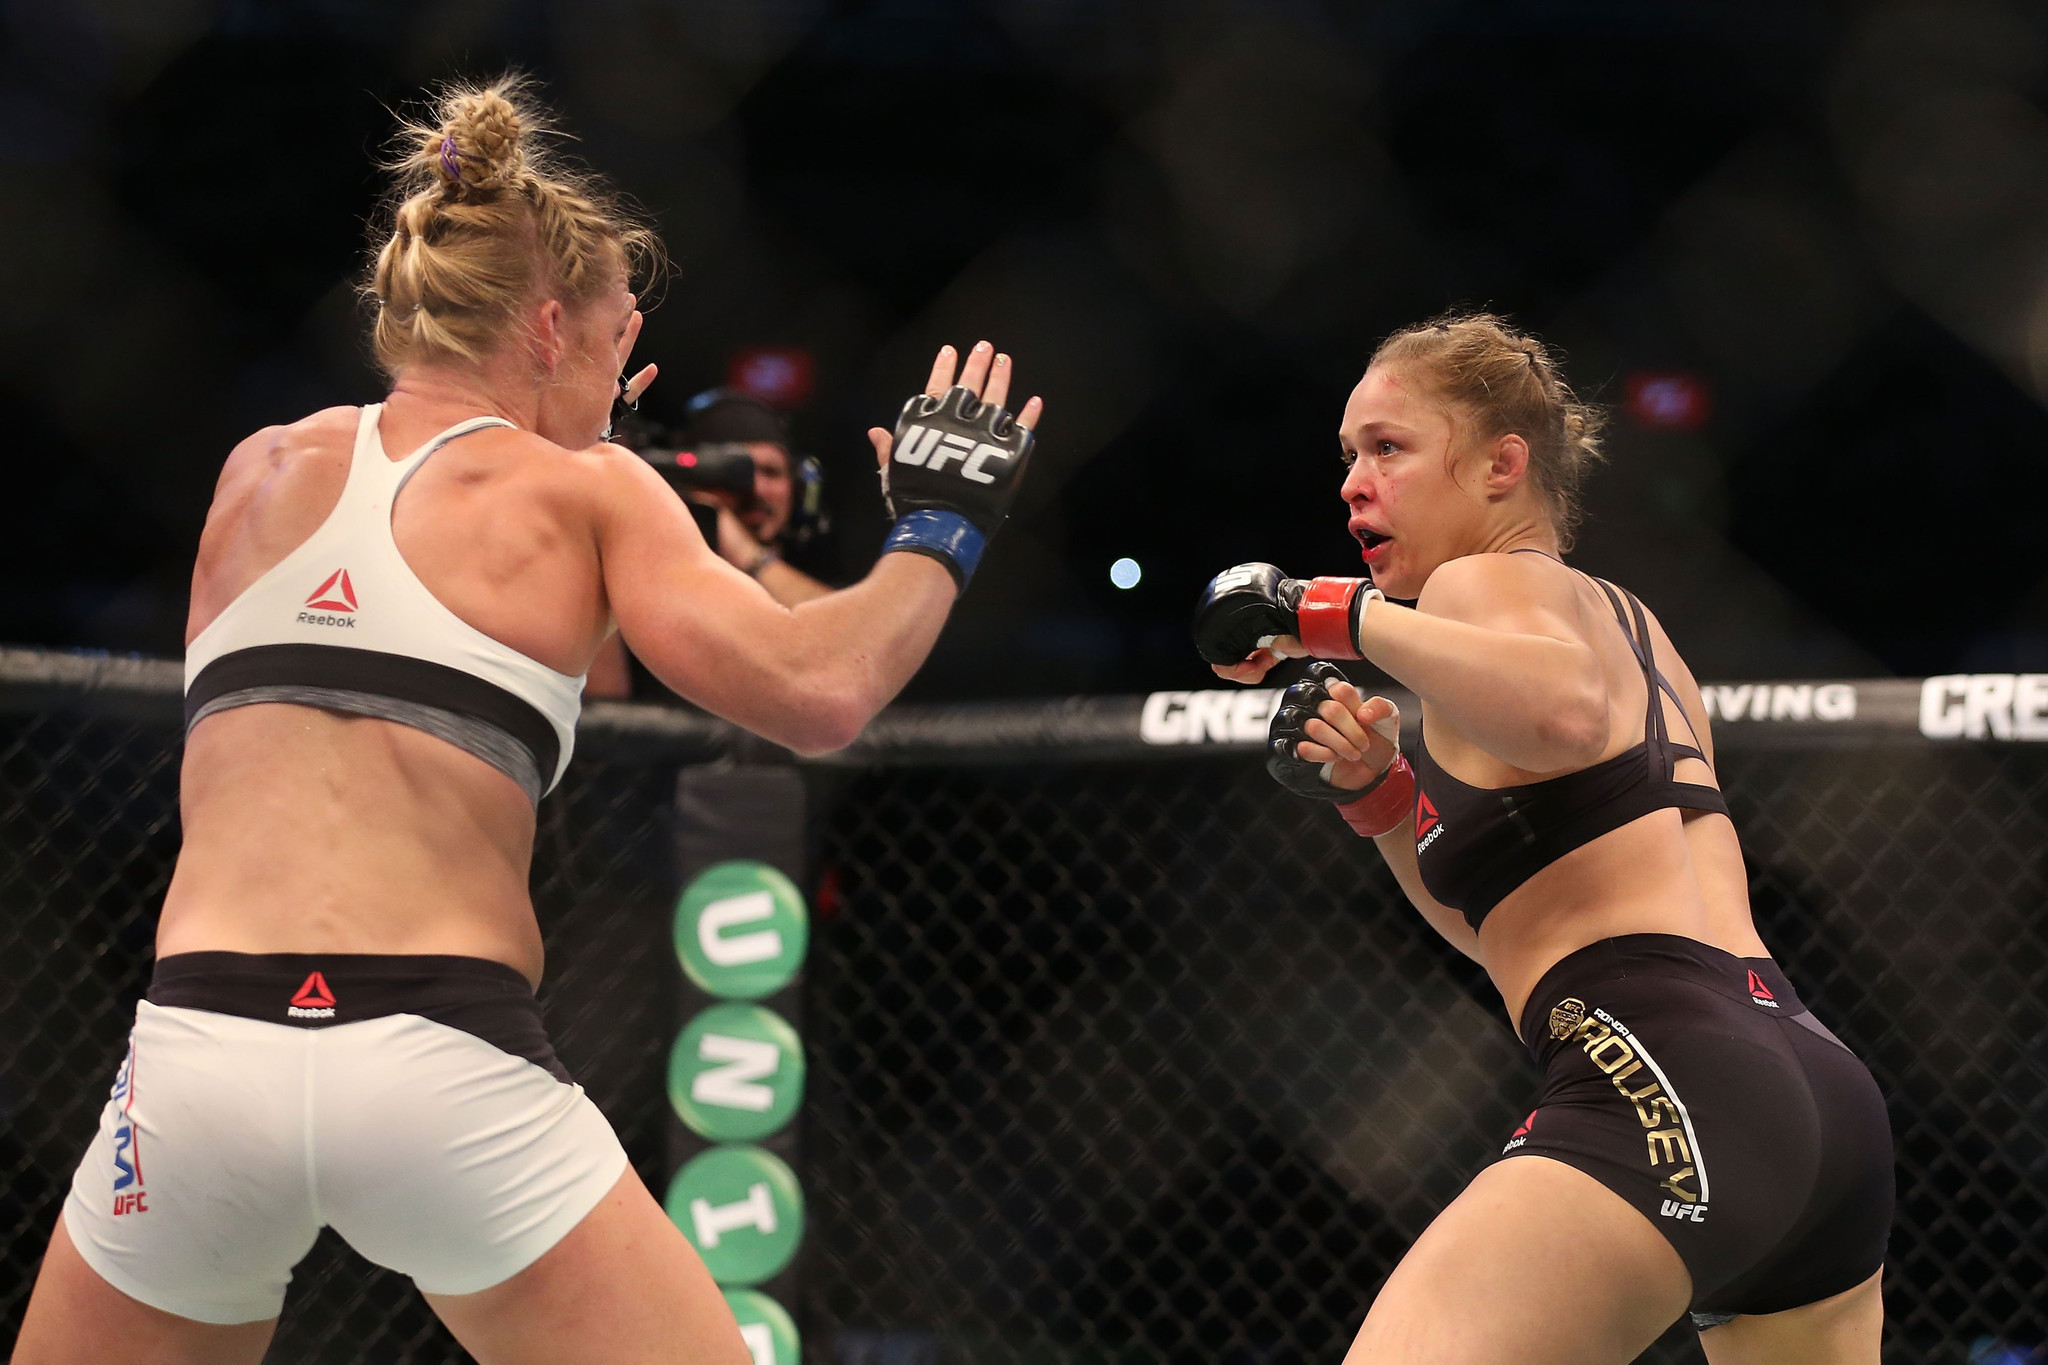 Wwe executive dreams of bringing ronda rousey into the wwe ring la times